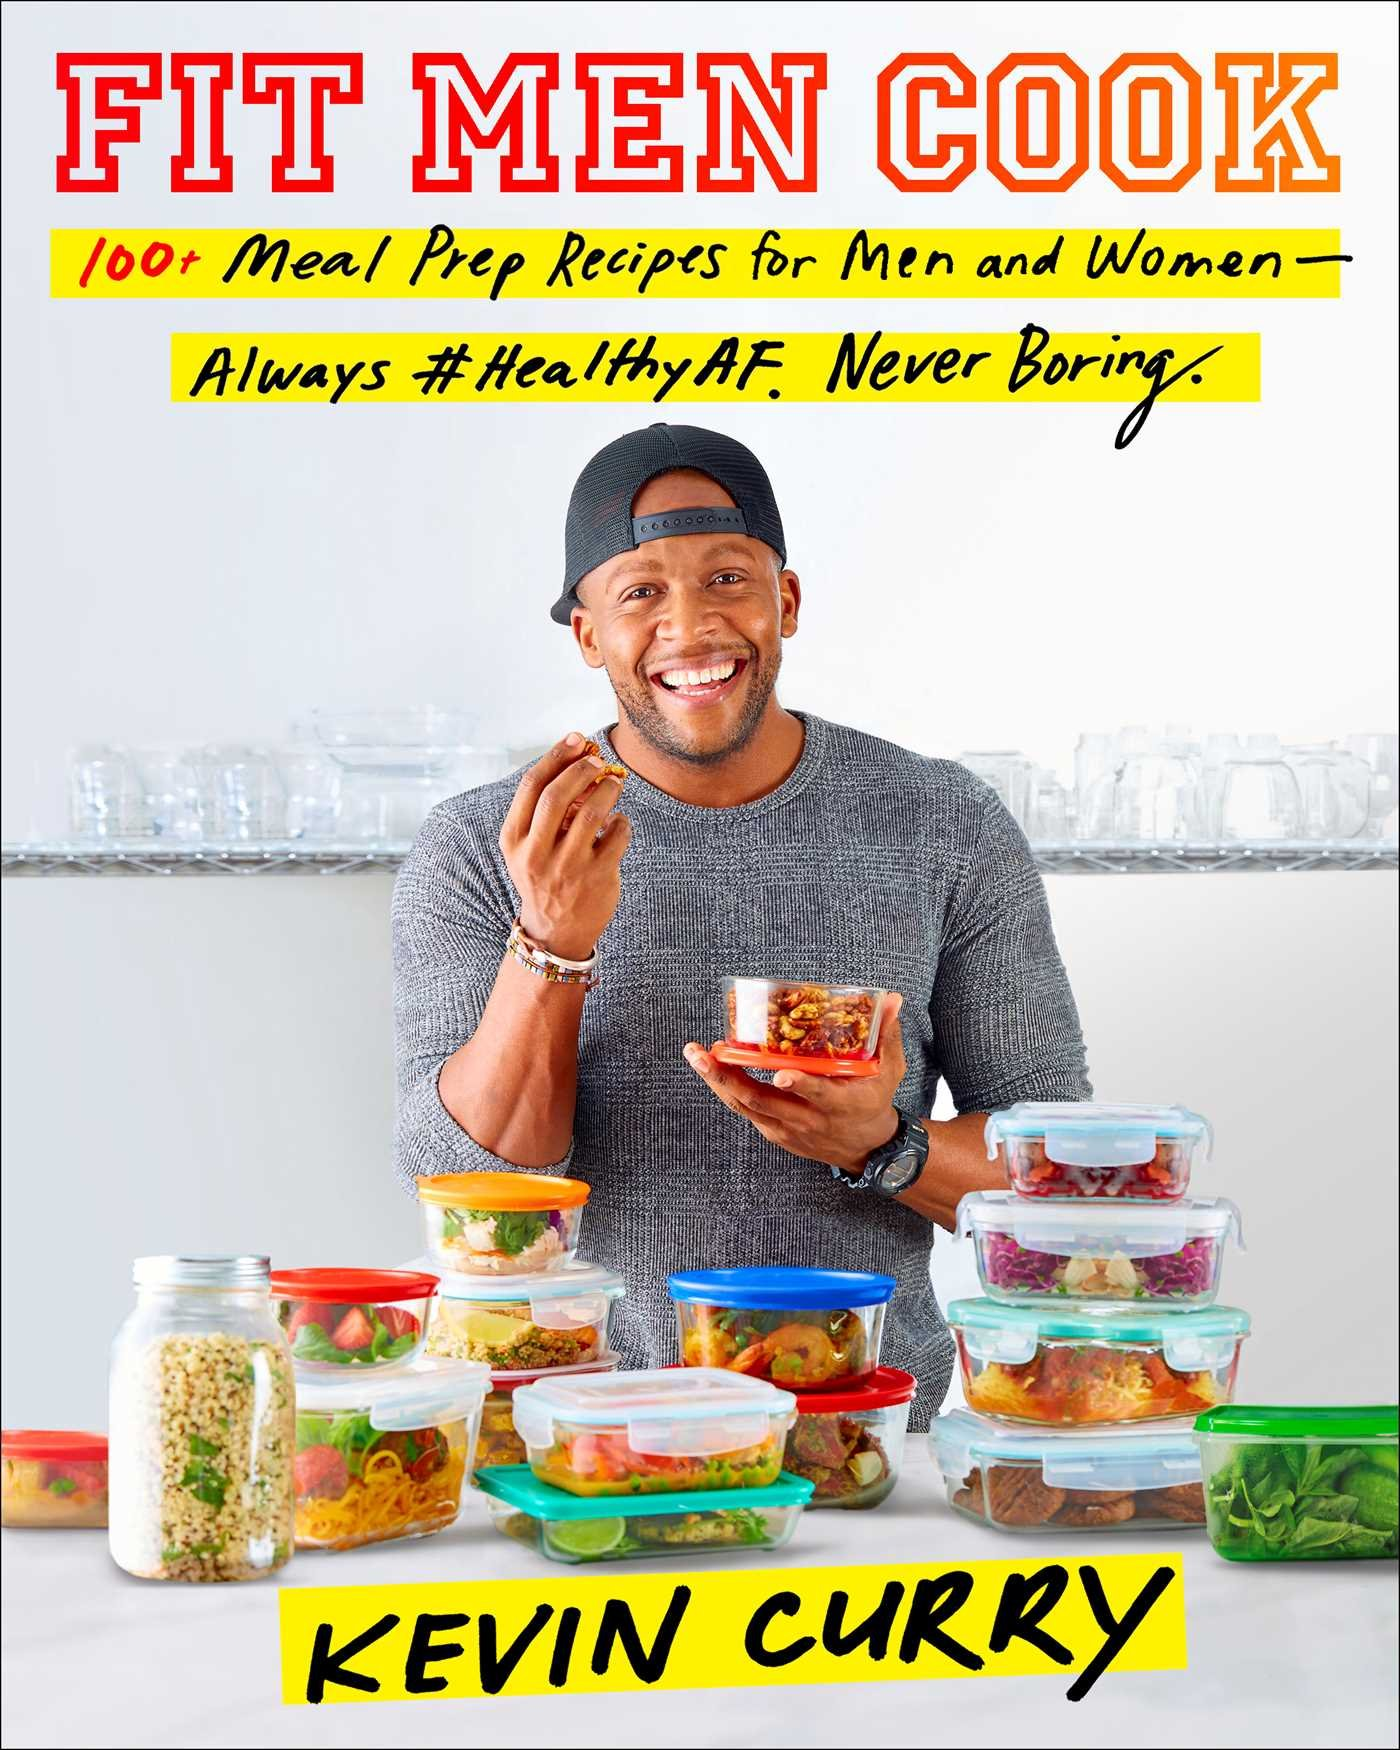 Fit Men Cook: 100+ Meal Prep Recipes for Men and Women―Always #HealthyAF, Never Boring